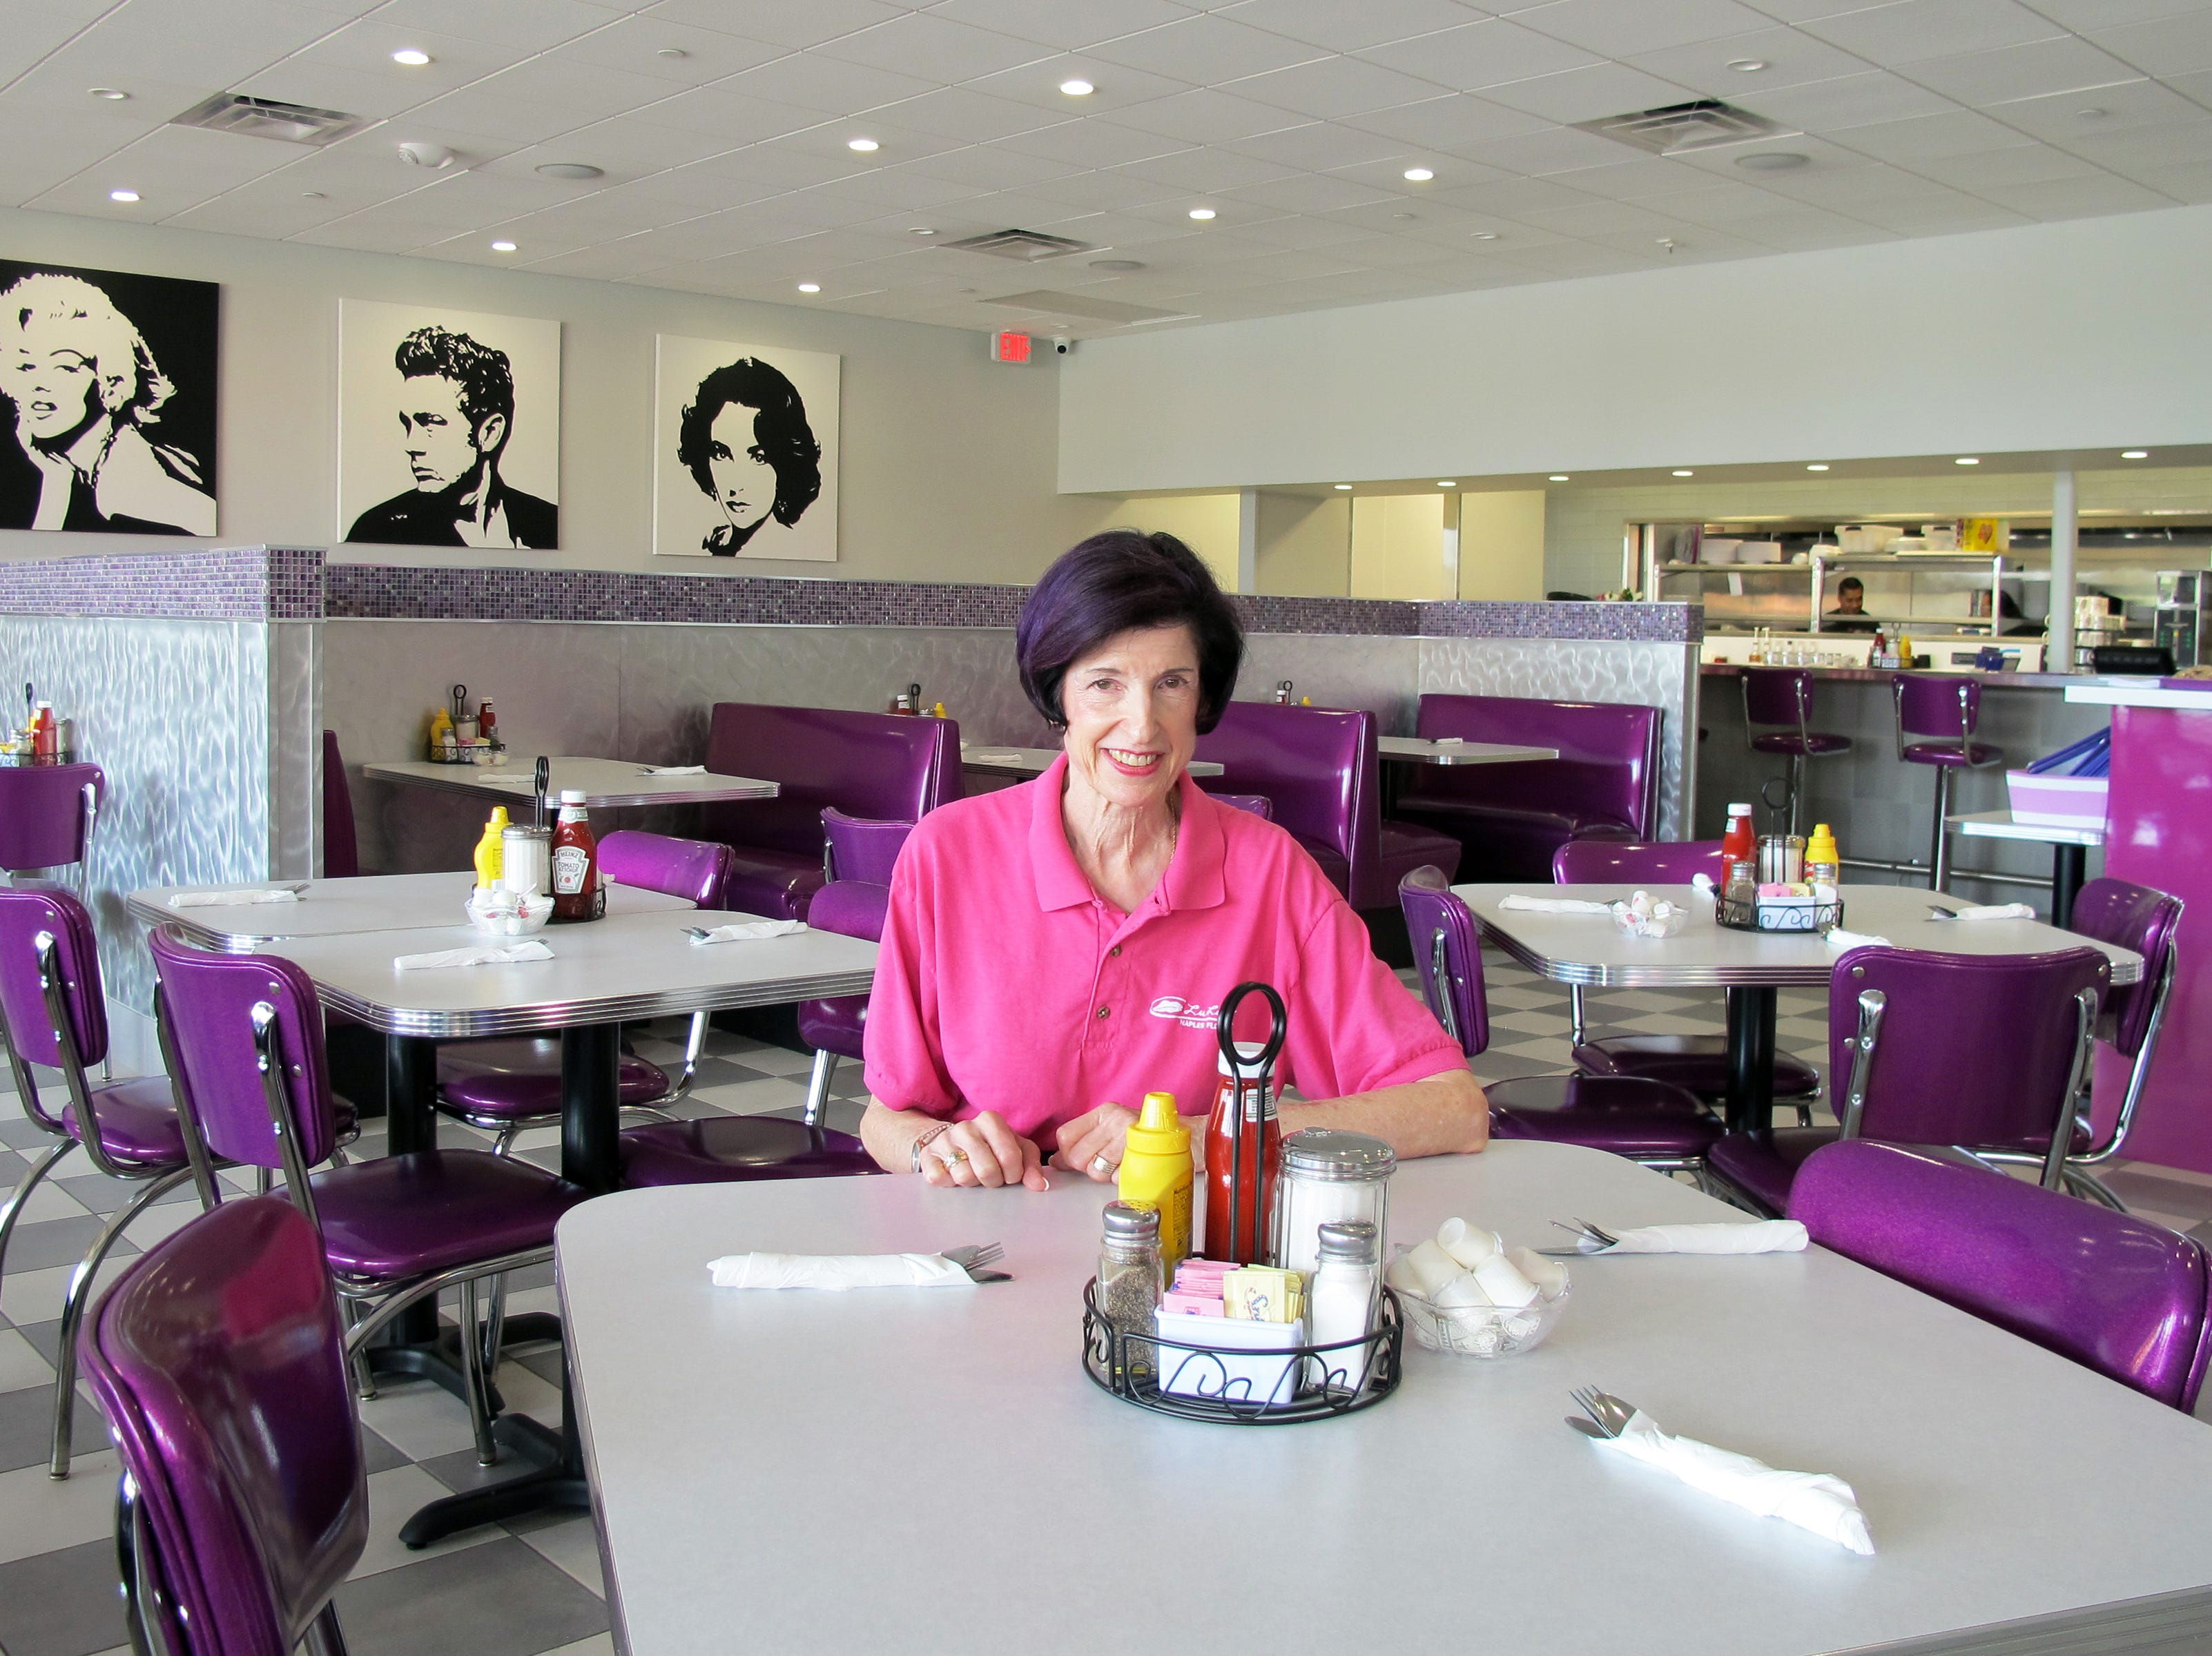 After operating Lulu B's Grill for more than 20 years, Jeri Holecek launched LuLu B's Diner in August 2018 at Green Tree Center in North Naples.